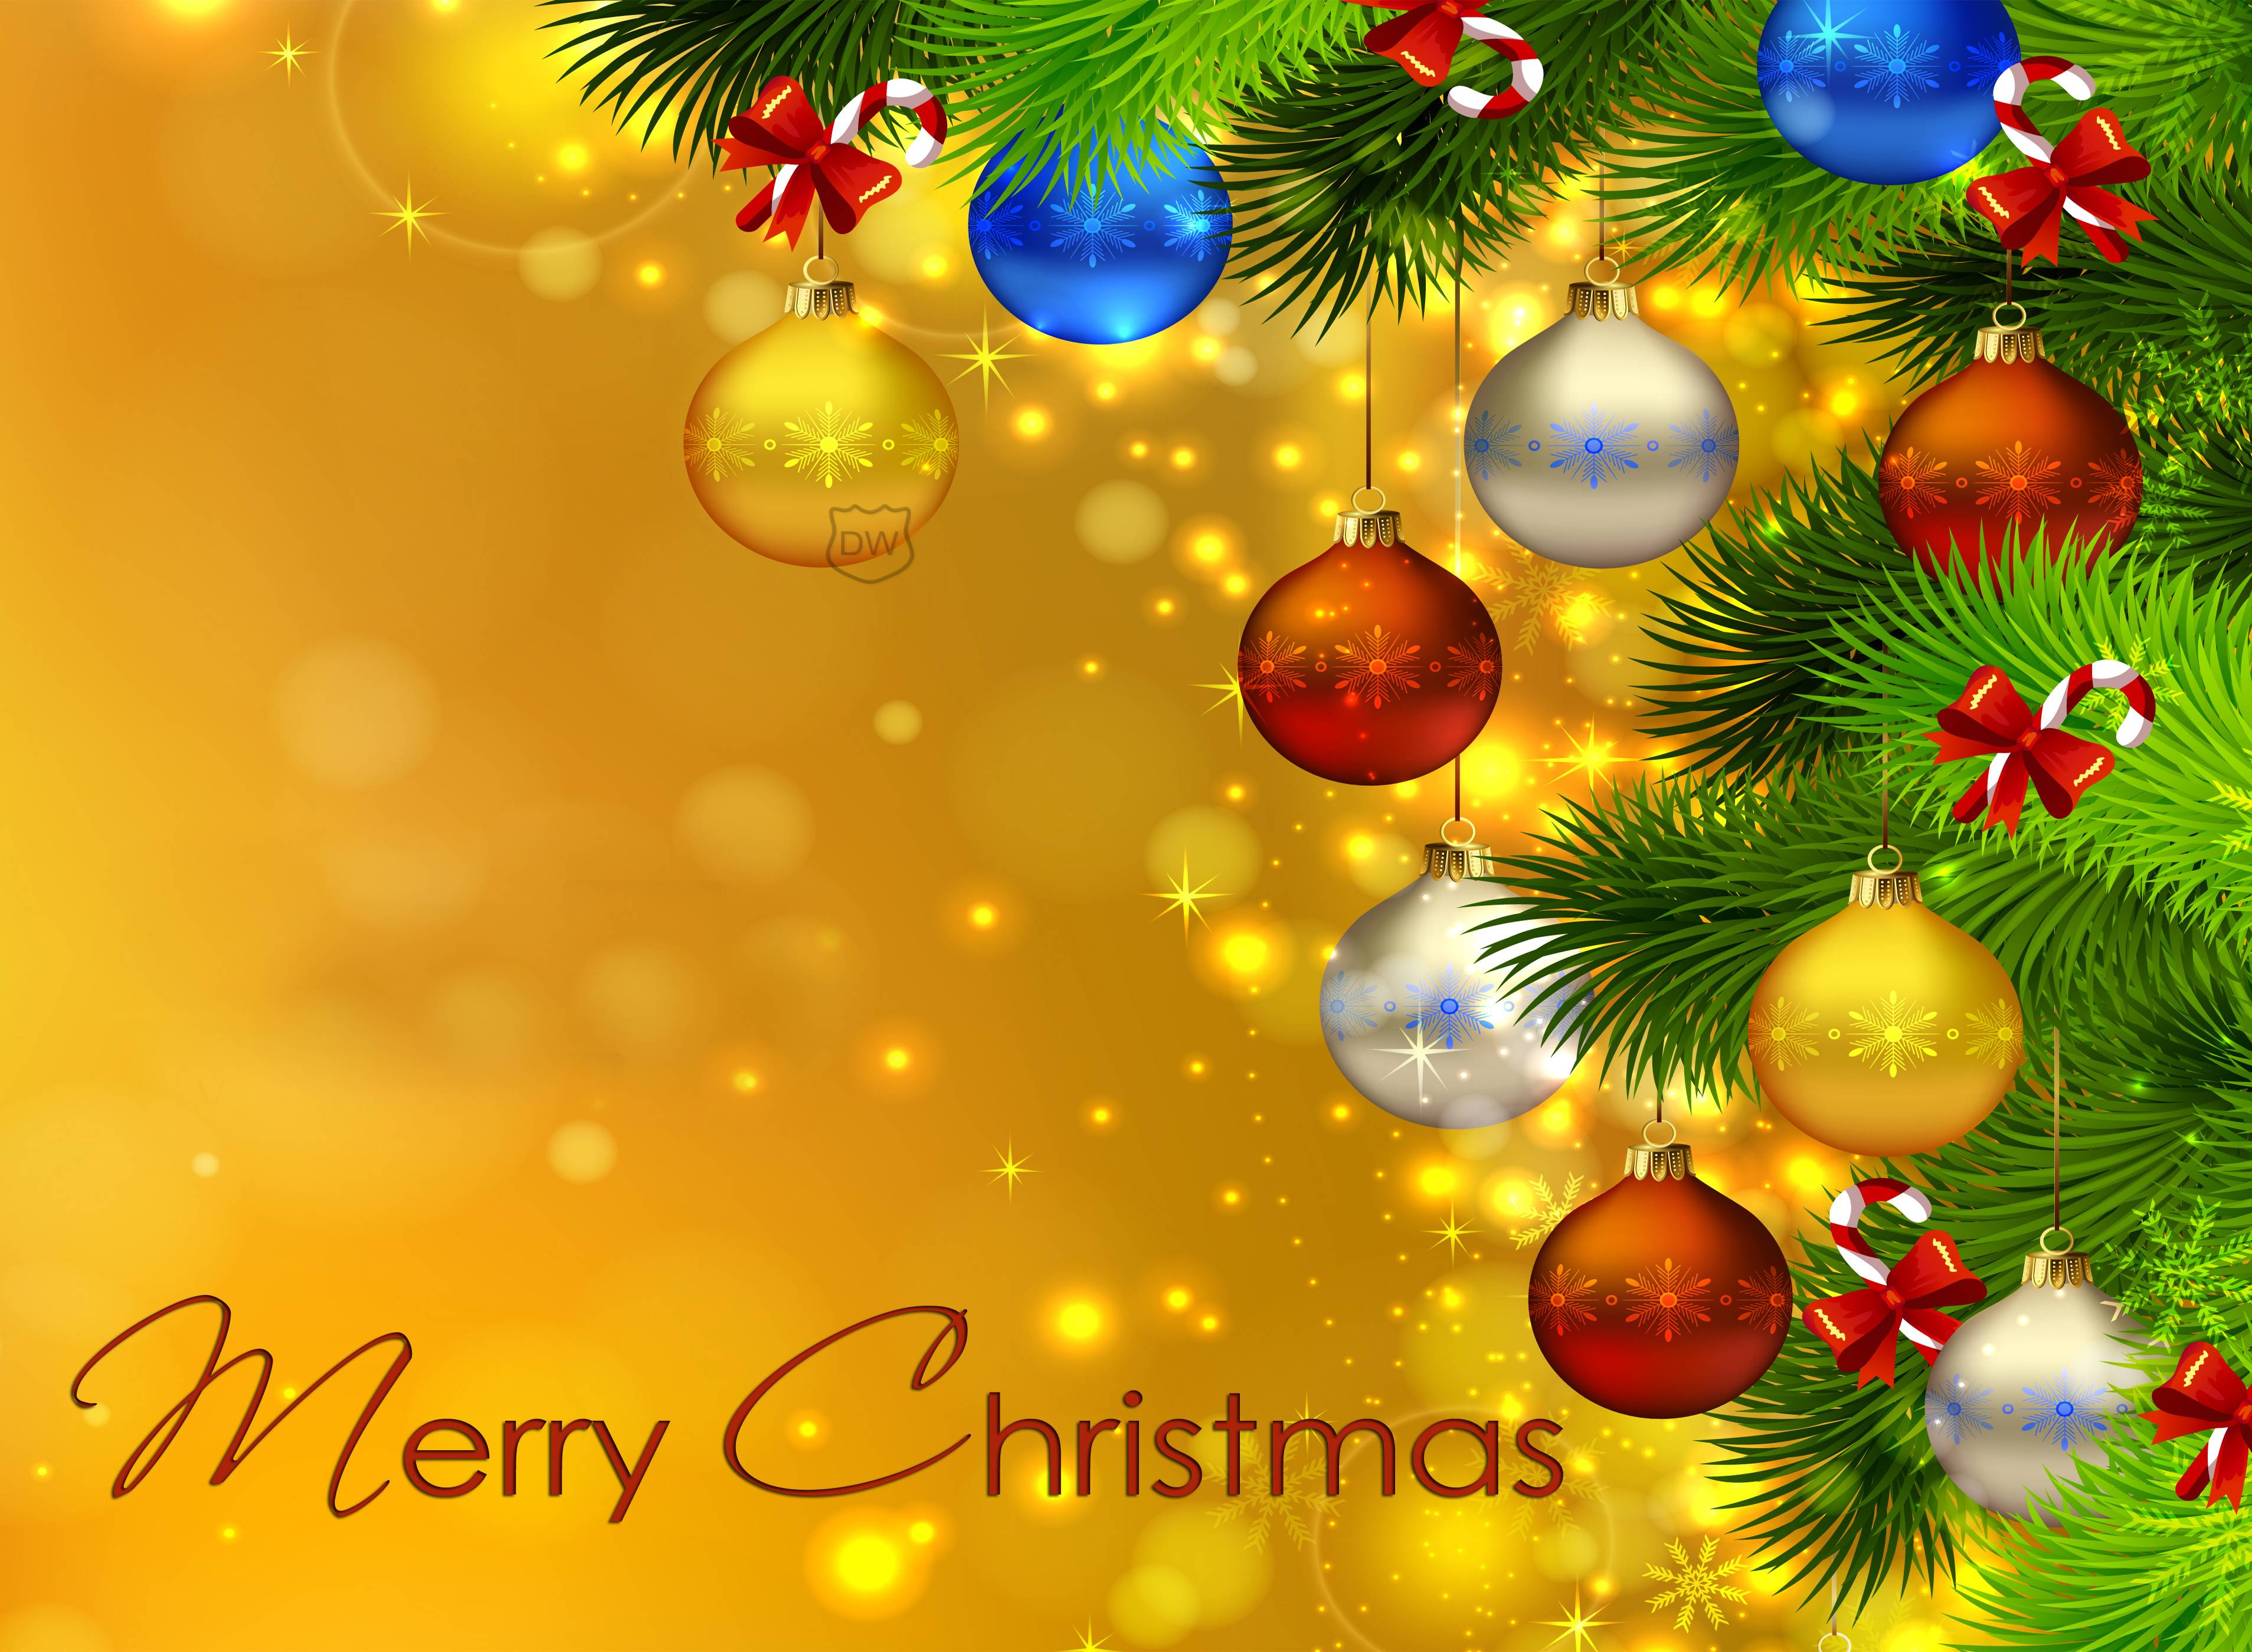 merry christmas widescreen wallpaper background 62420